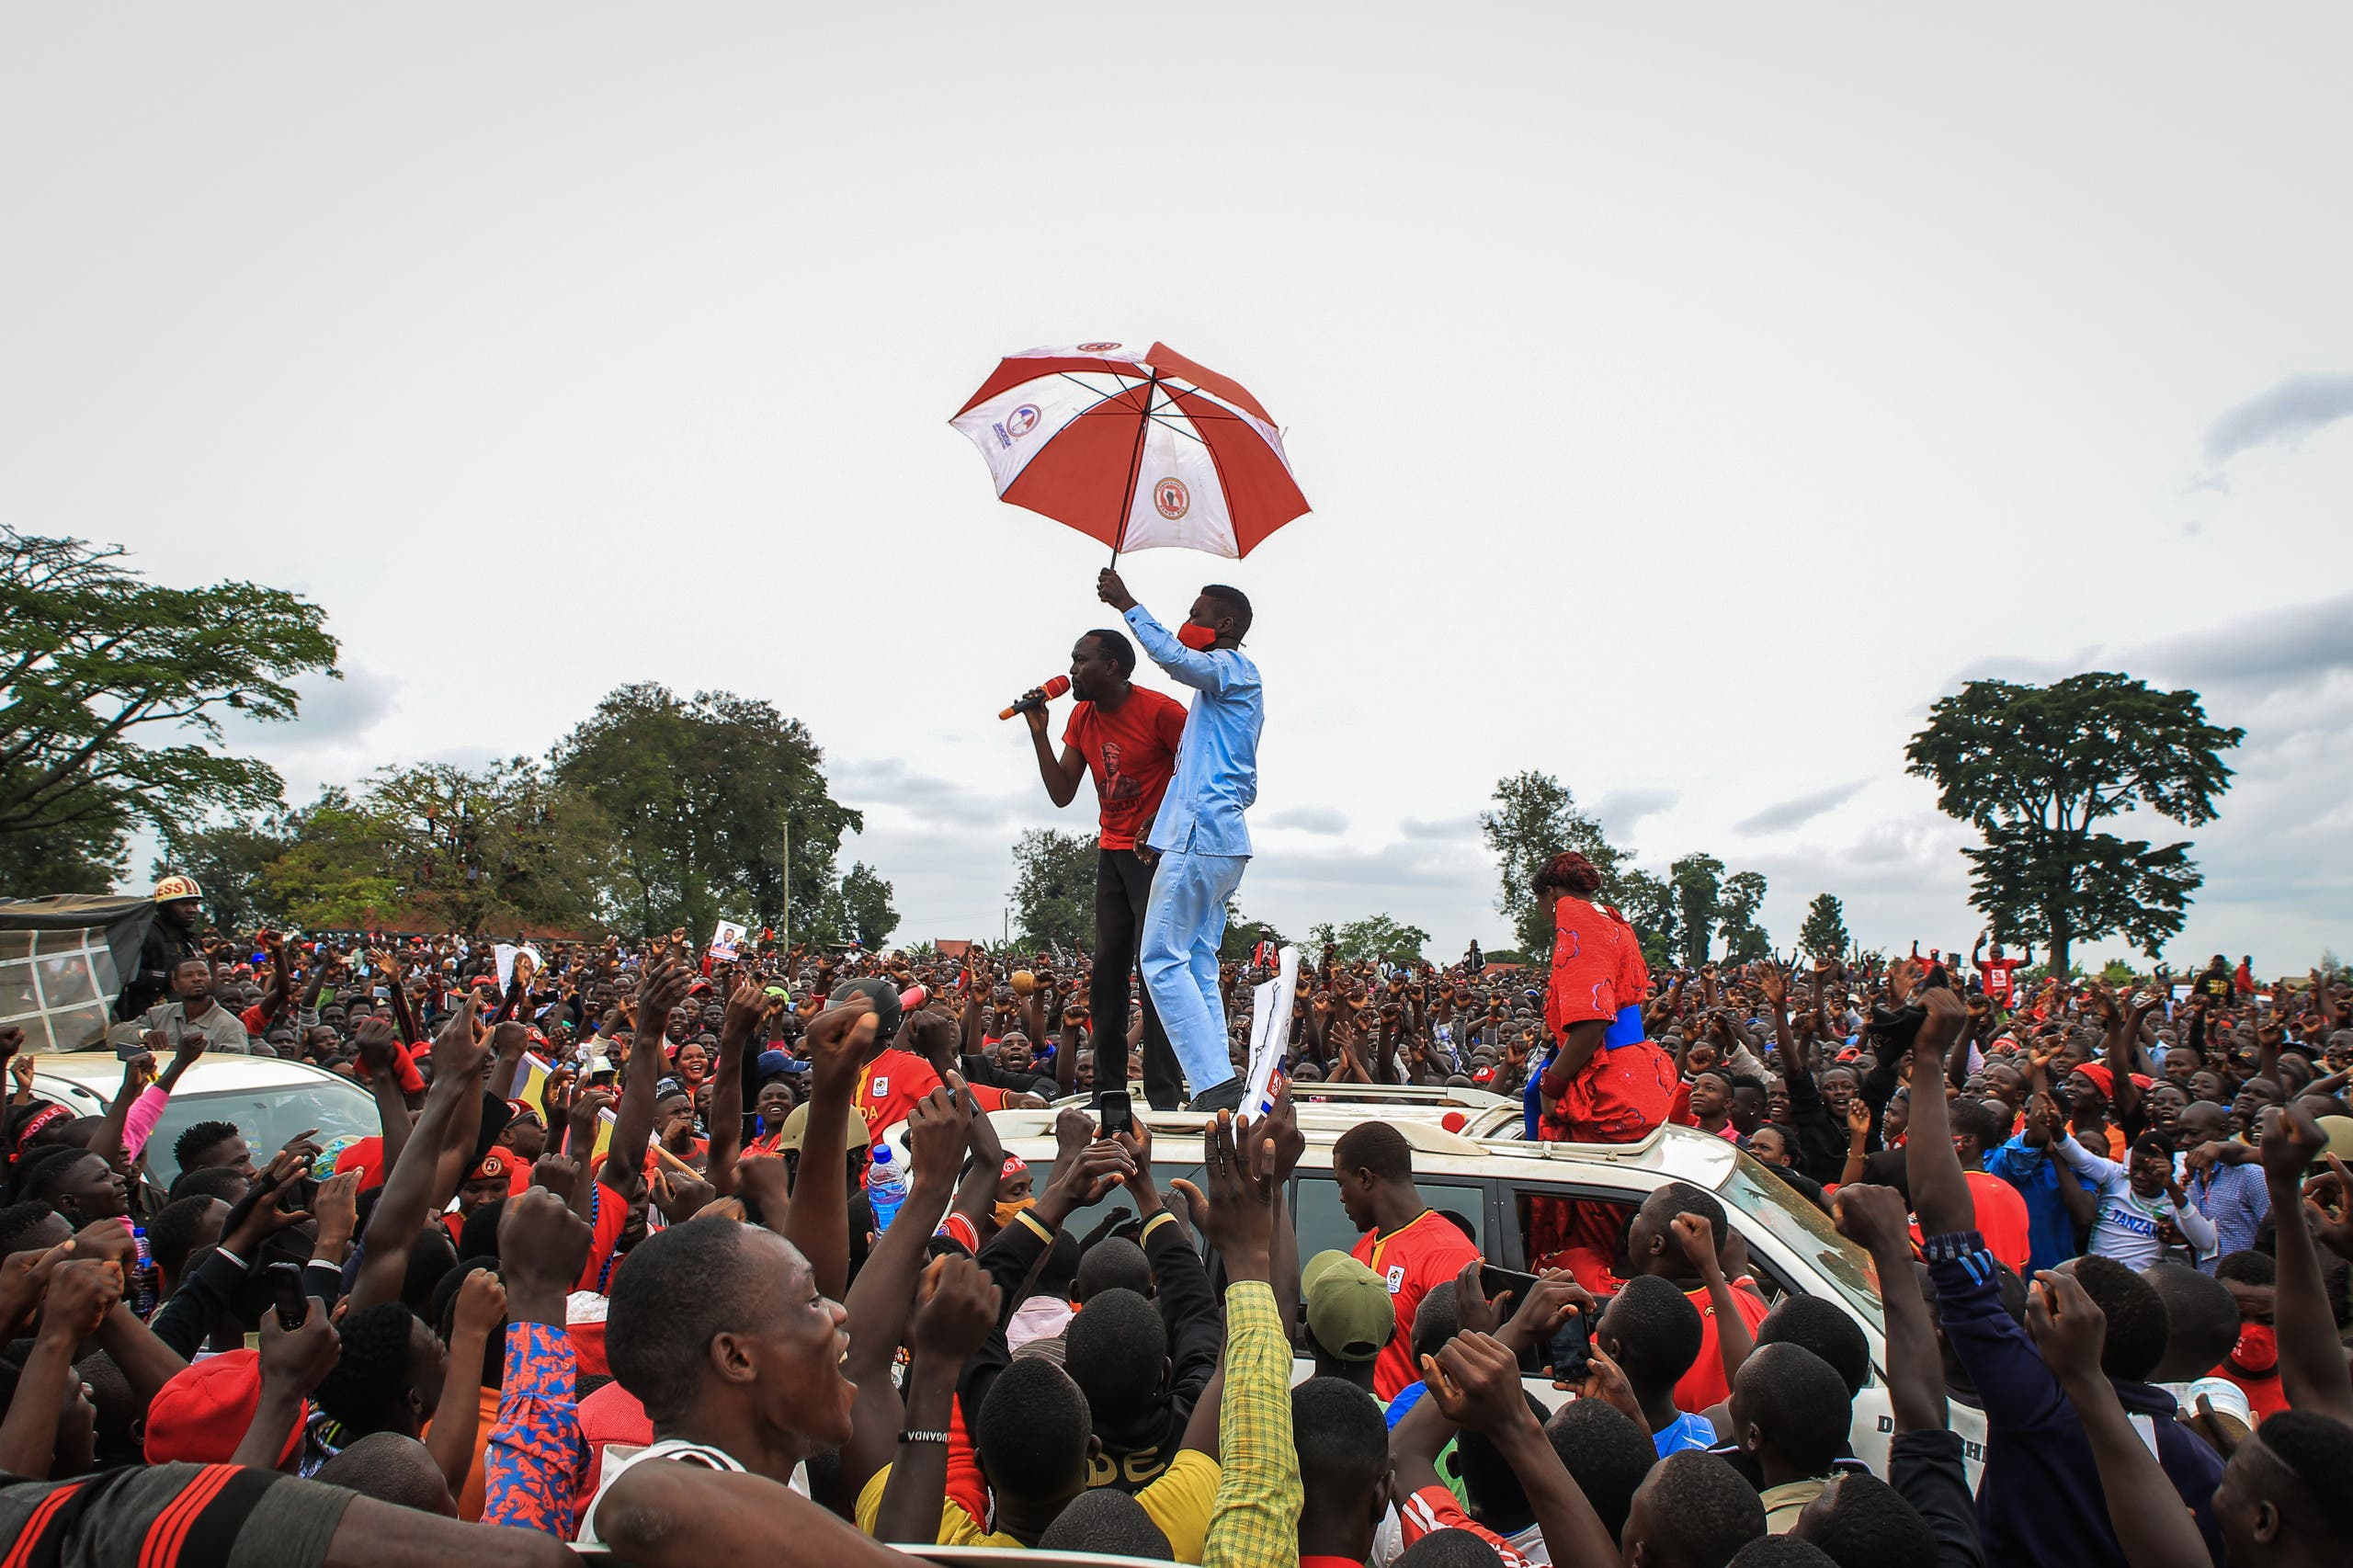 Ugandan musician turned politician Robert Kyagulanyi (C), also known as Bobi Wine, holds an umbrella as he was introduced to supporters during his presidential rally before he got arrested in Luuka, Uganda. (AFP)